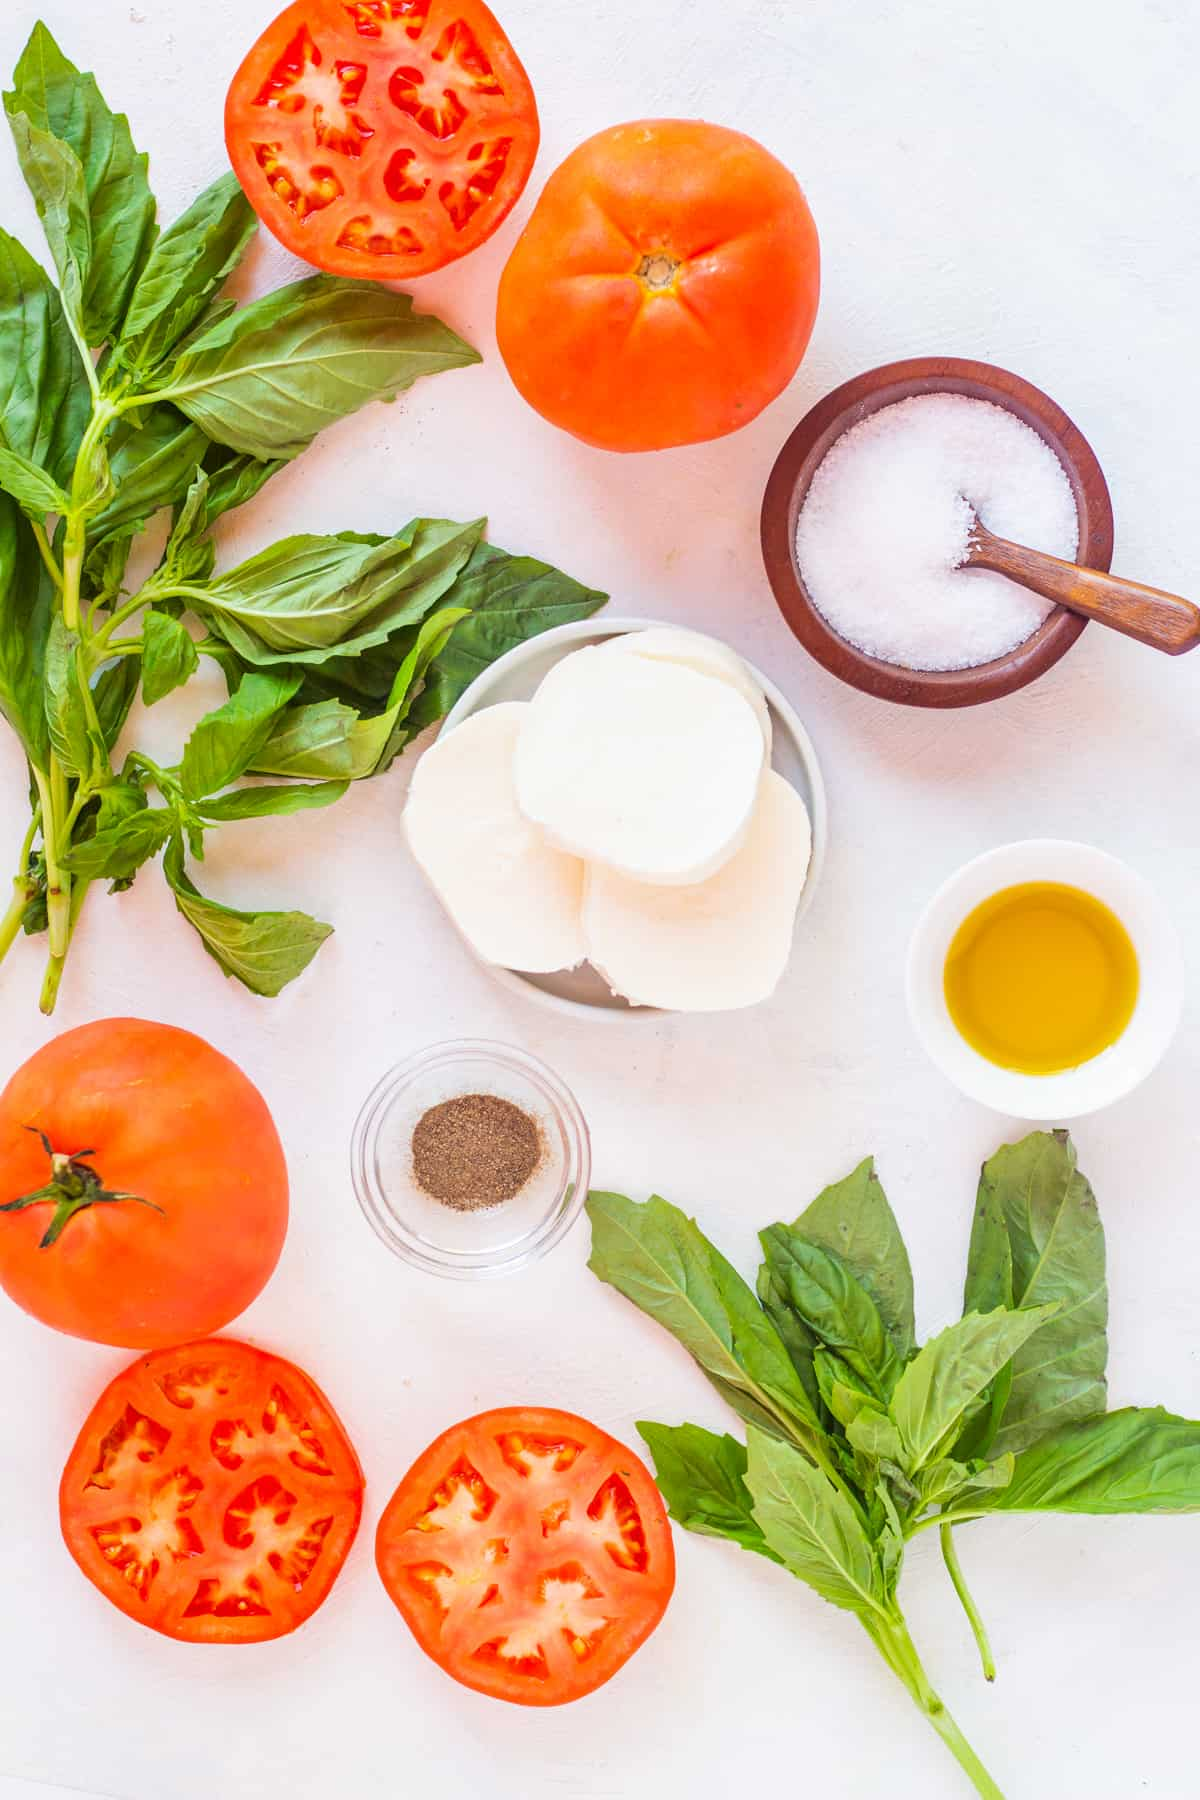 To make this Italian salad, you need tomatoes, mozzarella, basil, olive oil, salt and pepper.